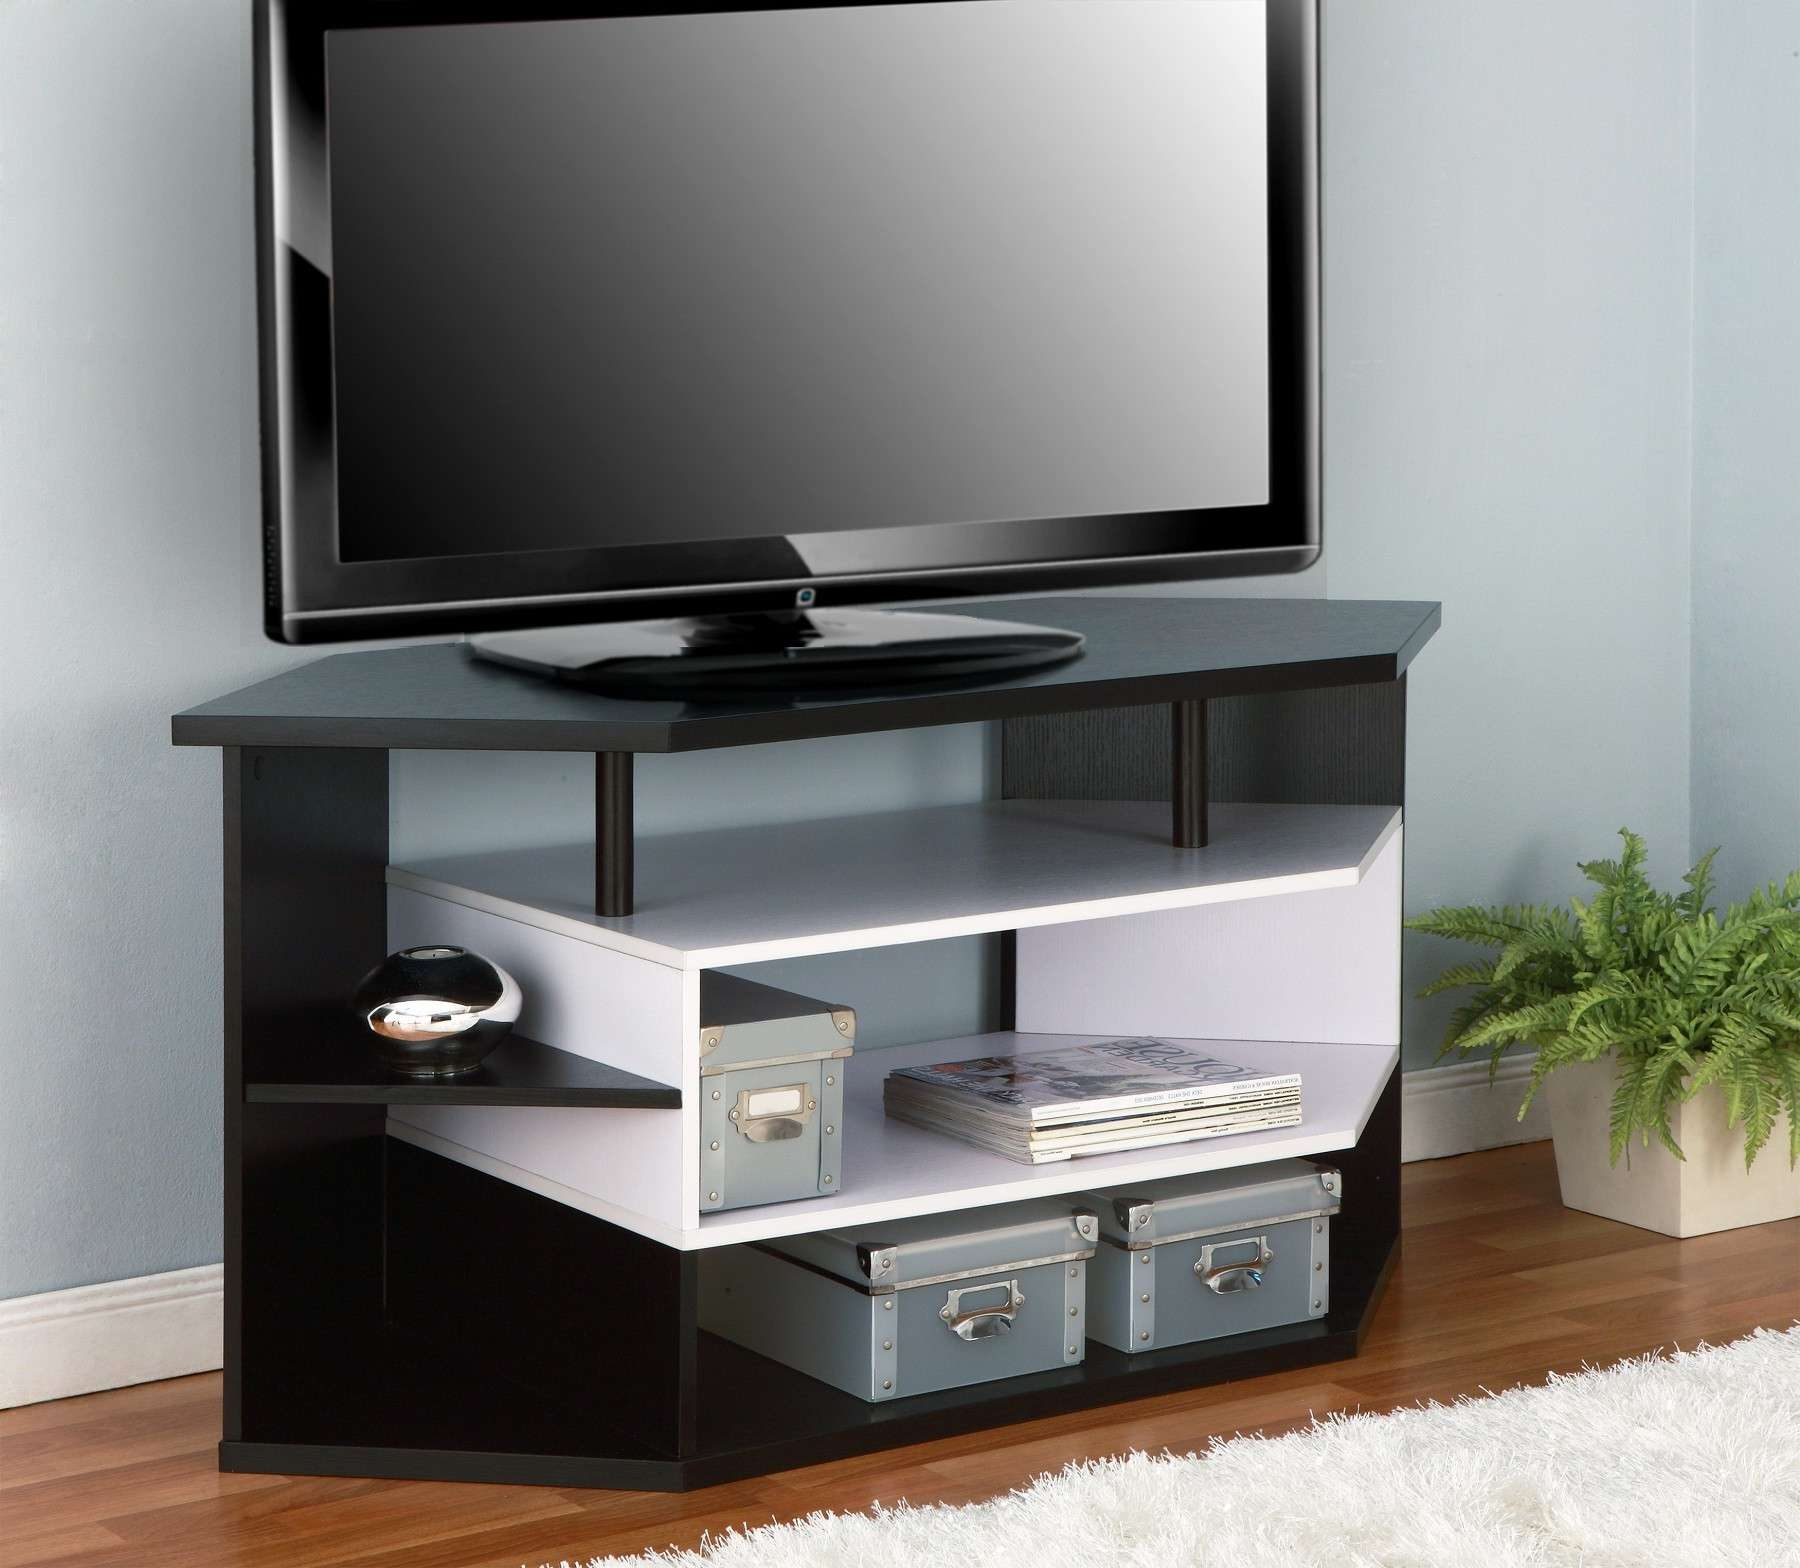 Incredible Modern Corner Tv Stand With Uk Cf White Trends Images Regarding Modern Corner Tv Stands (View 10 of 20)